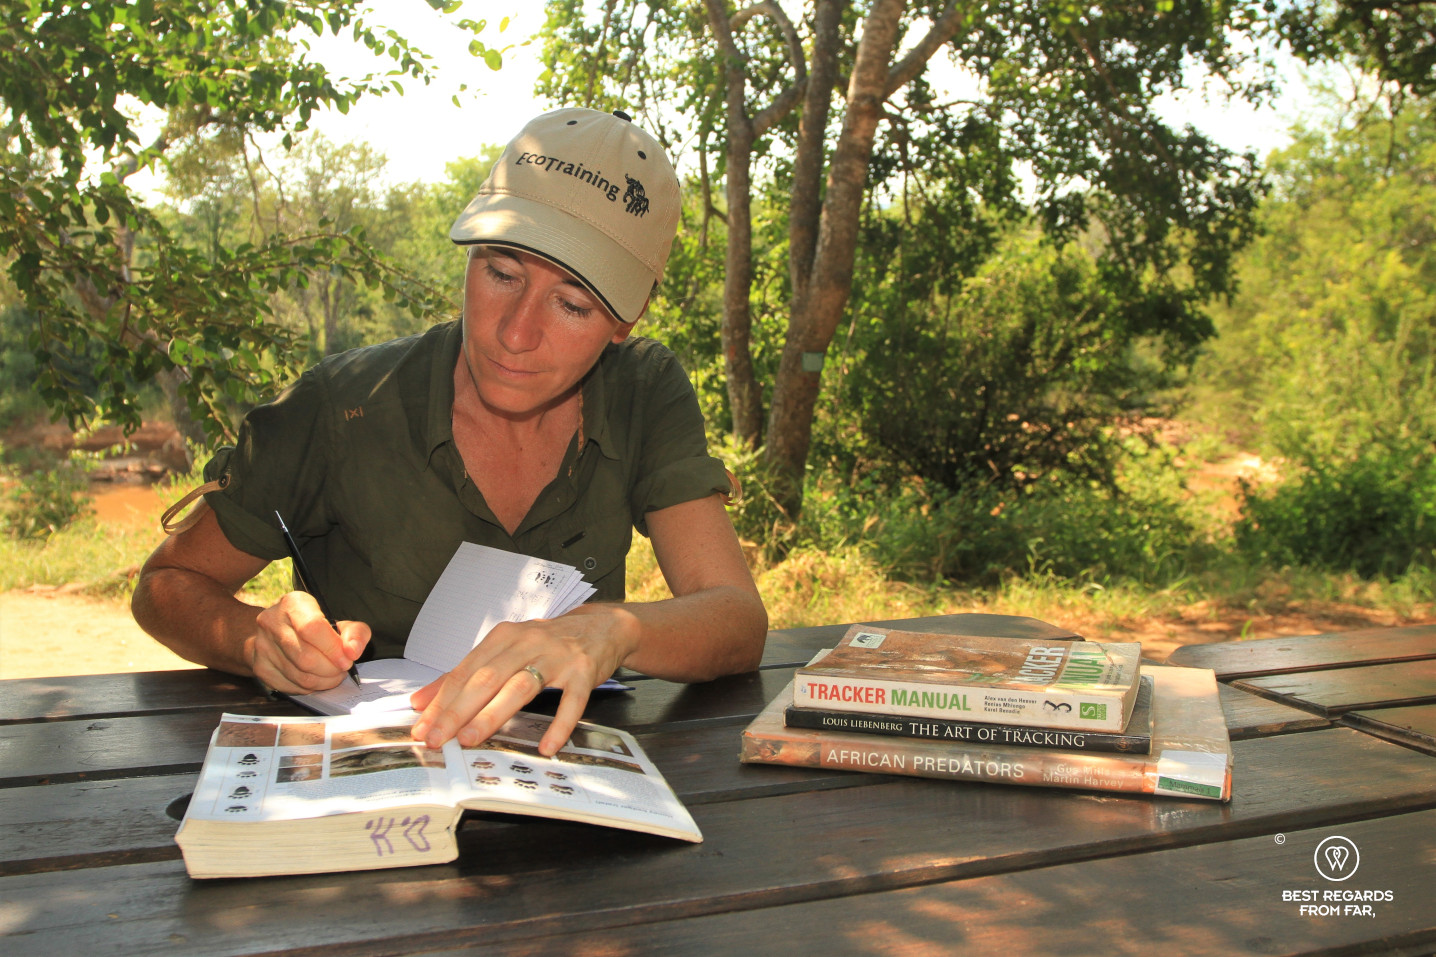 Author Claire Lessiau studying the theory of tracking in a book at the Selati camp